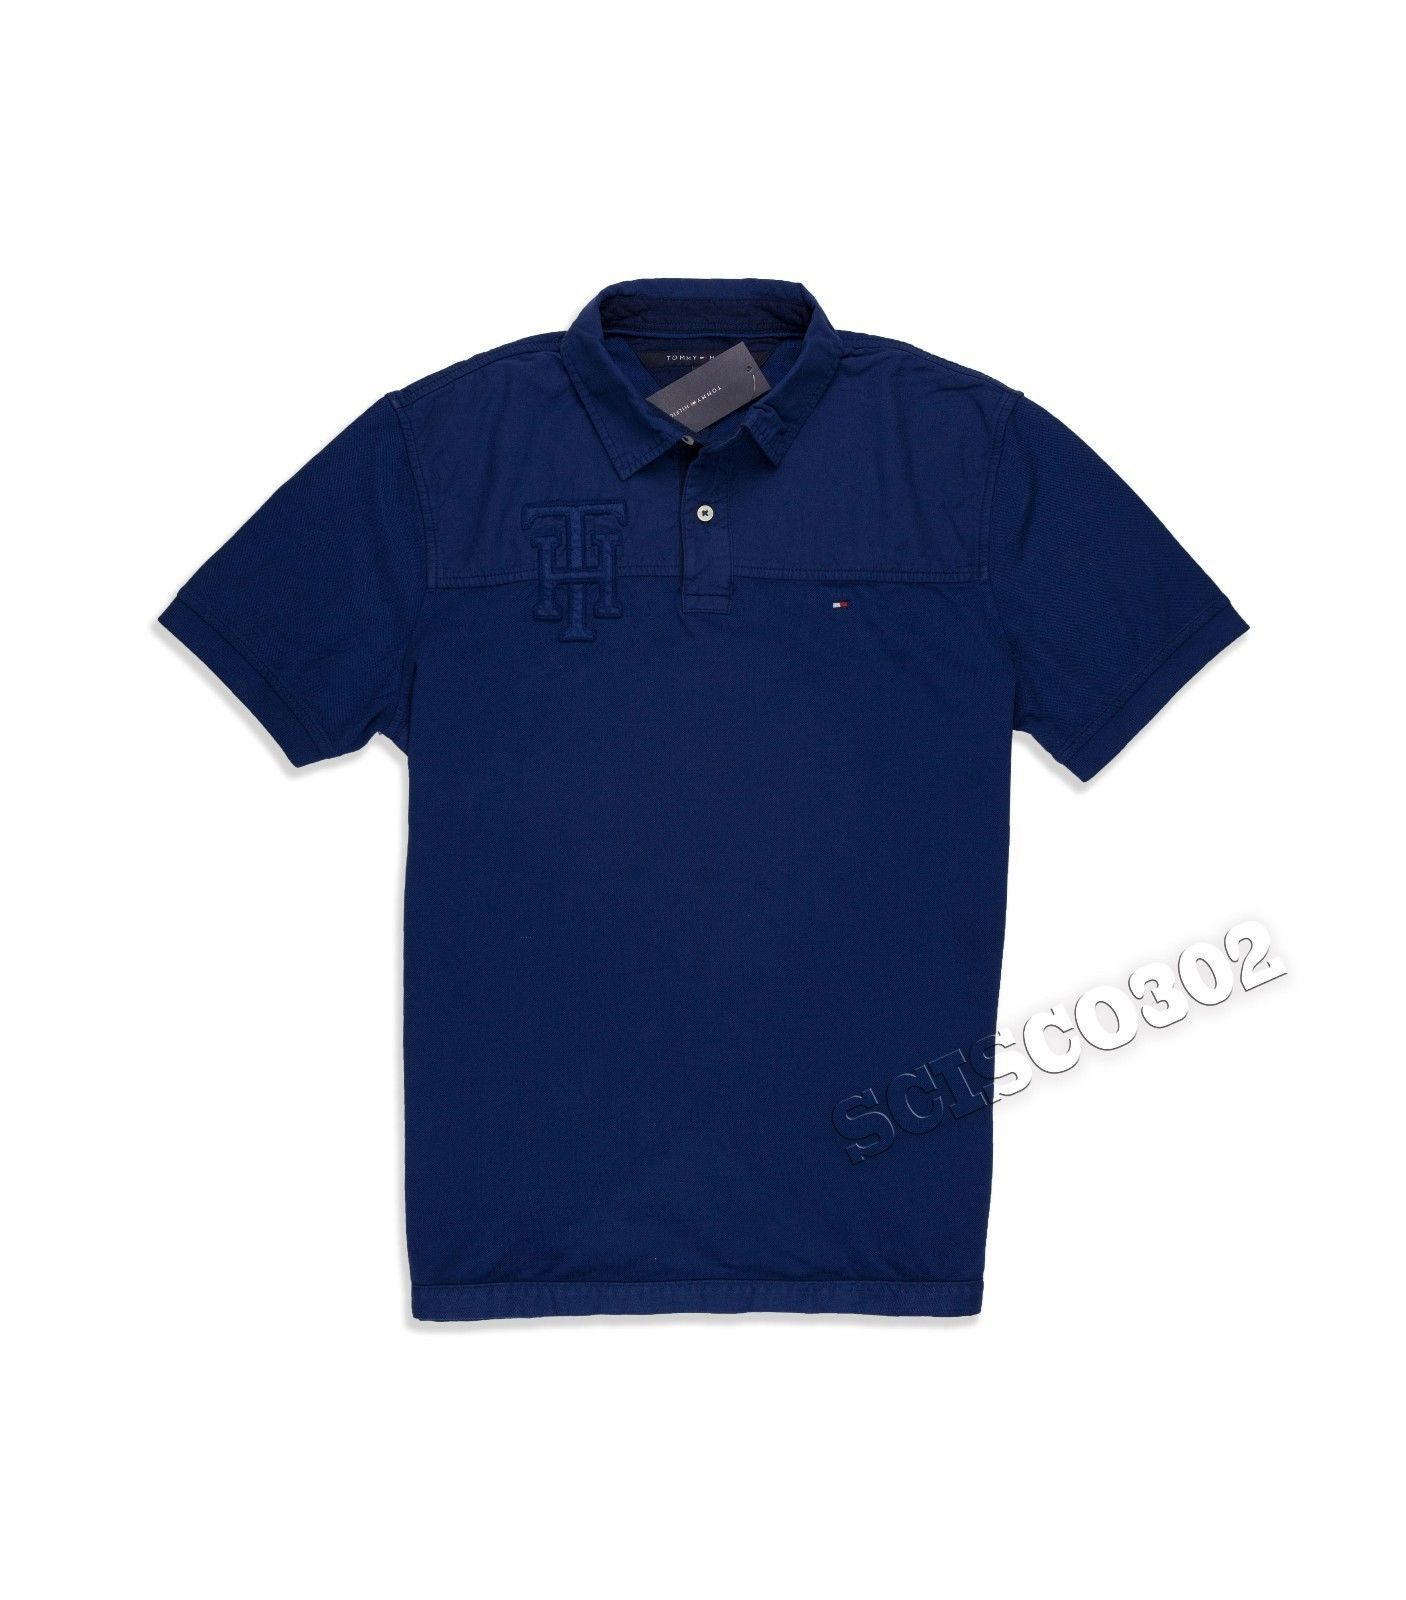 Tommy Hilfiger Polo Shirt Custom Fit Dip Dyed Navy Blue Mens Polo